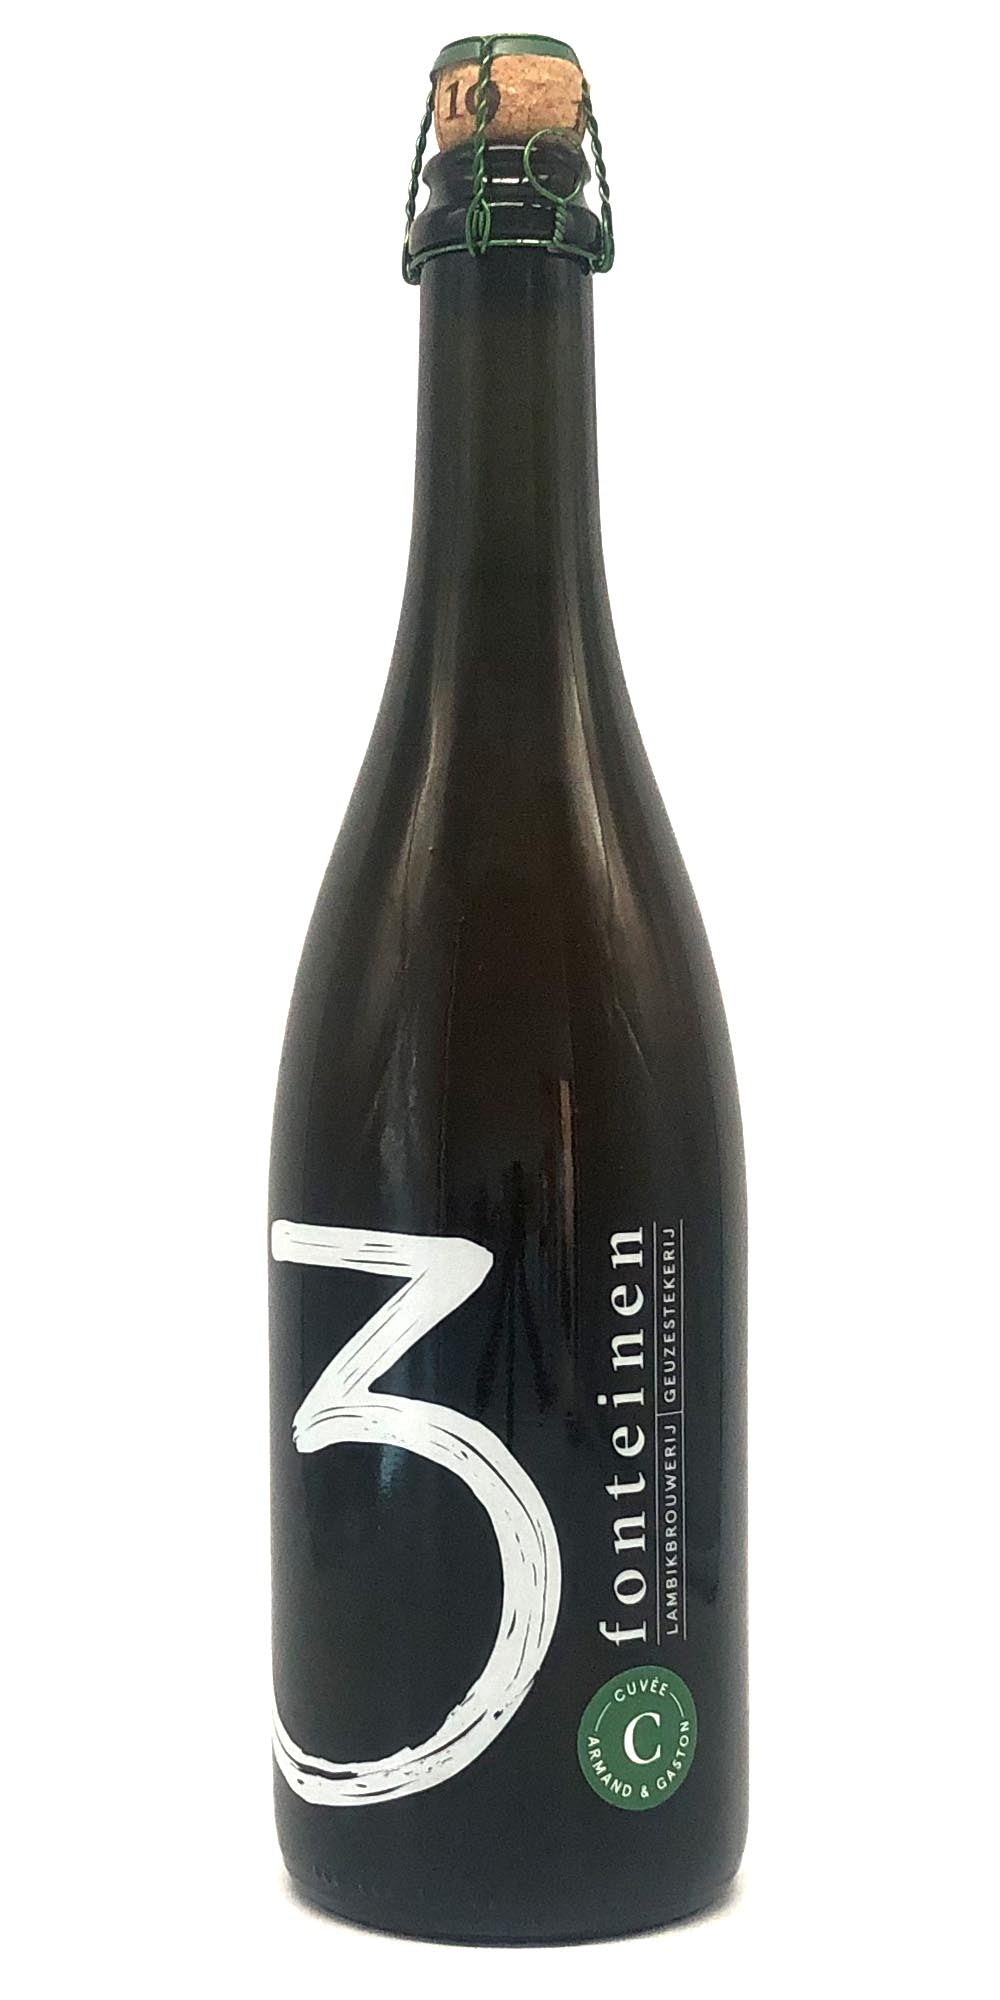 3 Fonteinen - Oude Geuze Cuvée Armand & Gaston #48 (2019) - 750ml - Drikbeer - Order Craft Beer Online